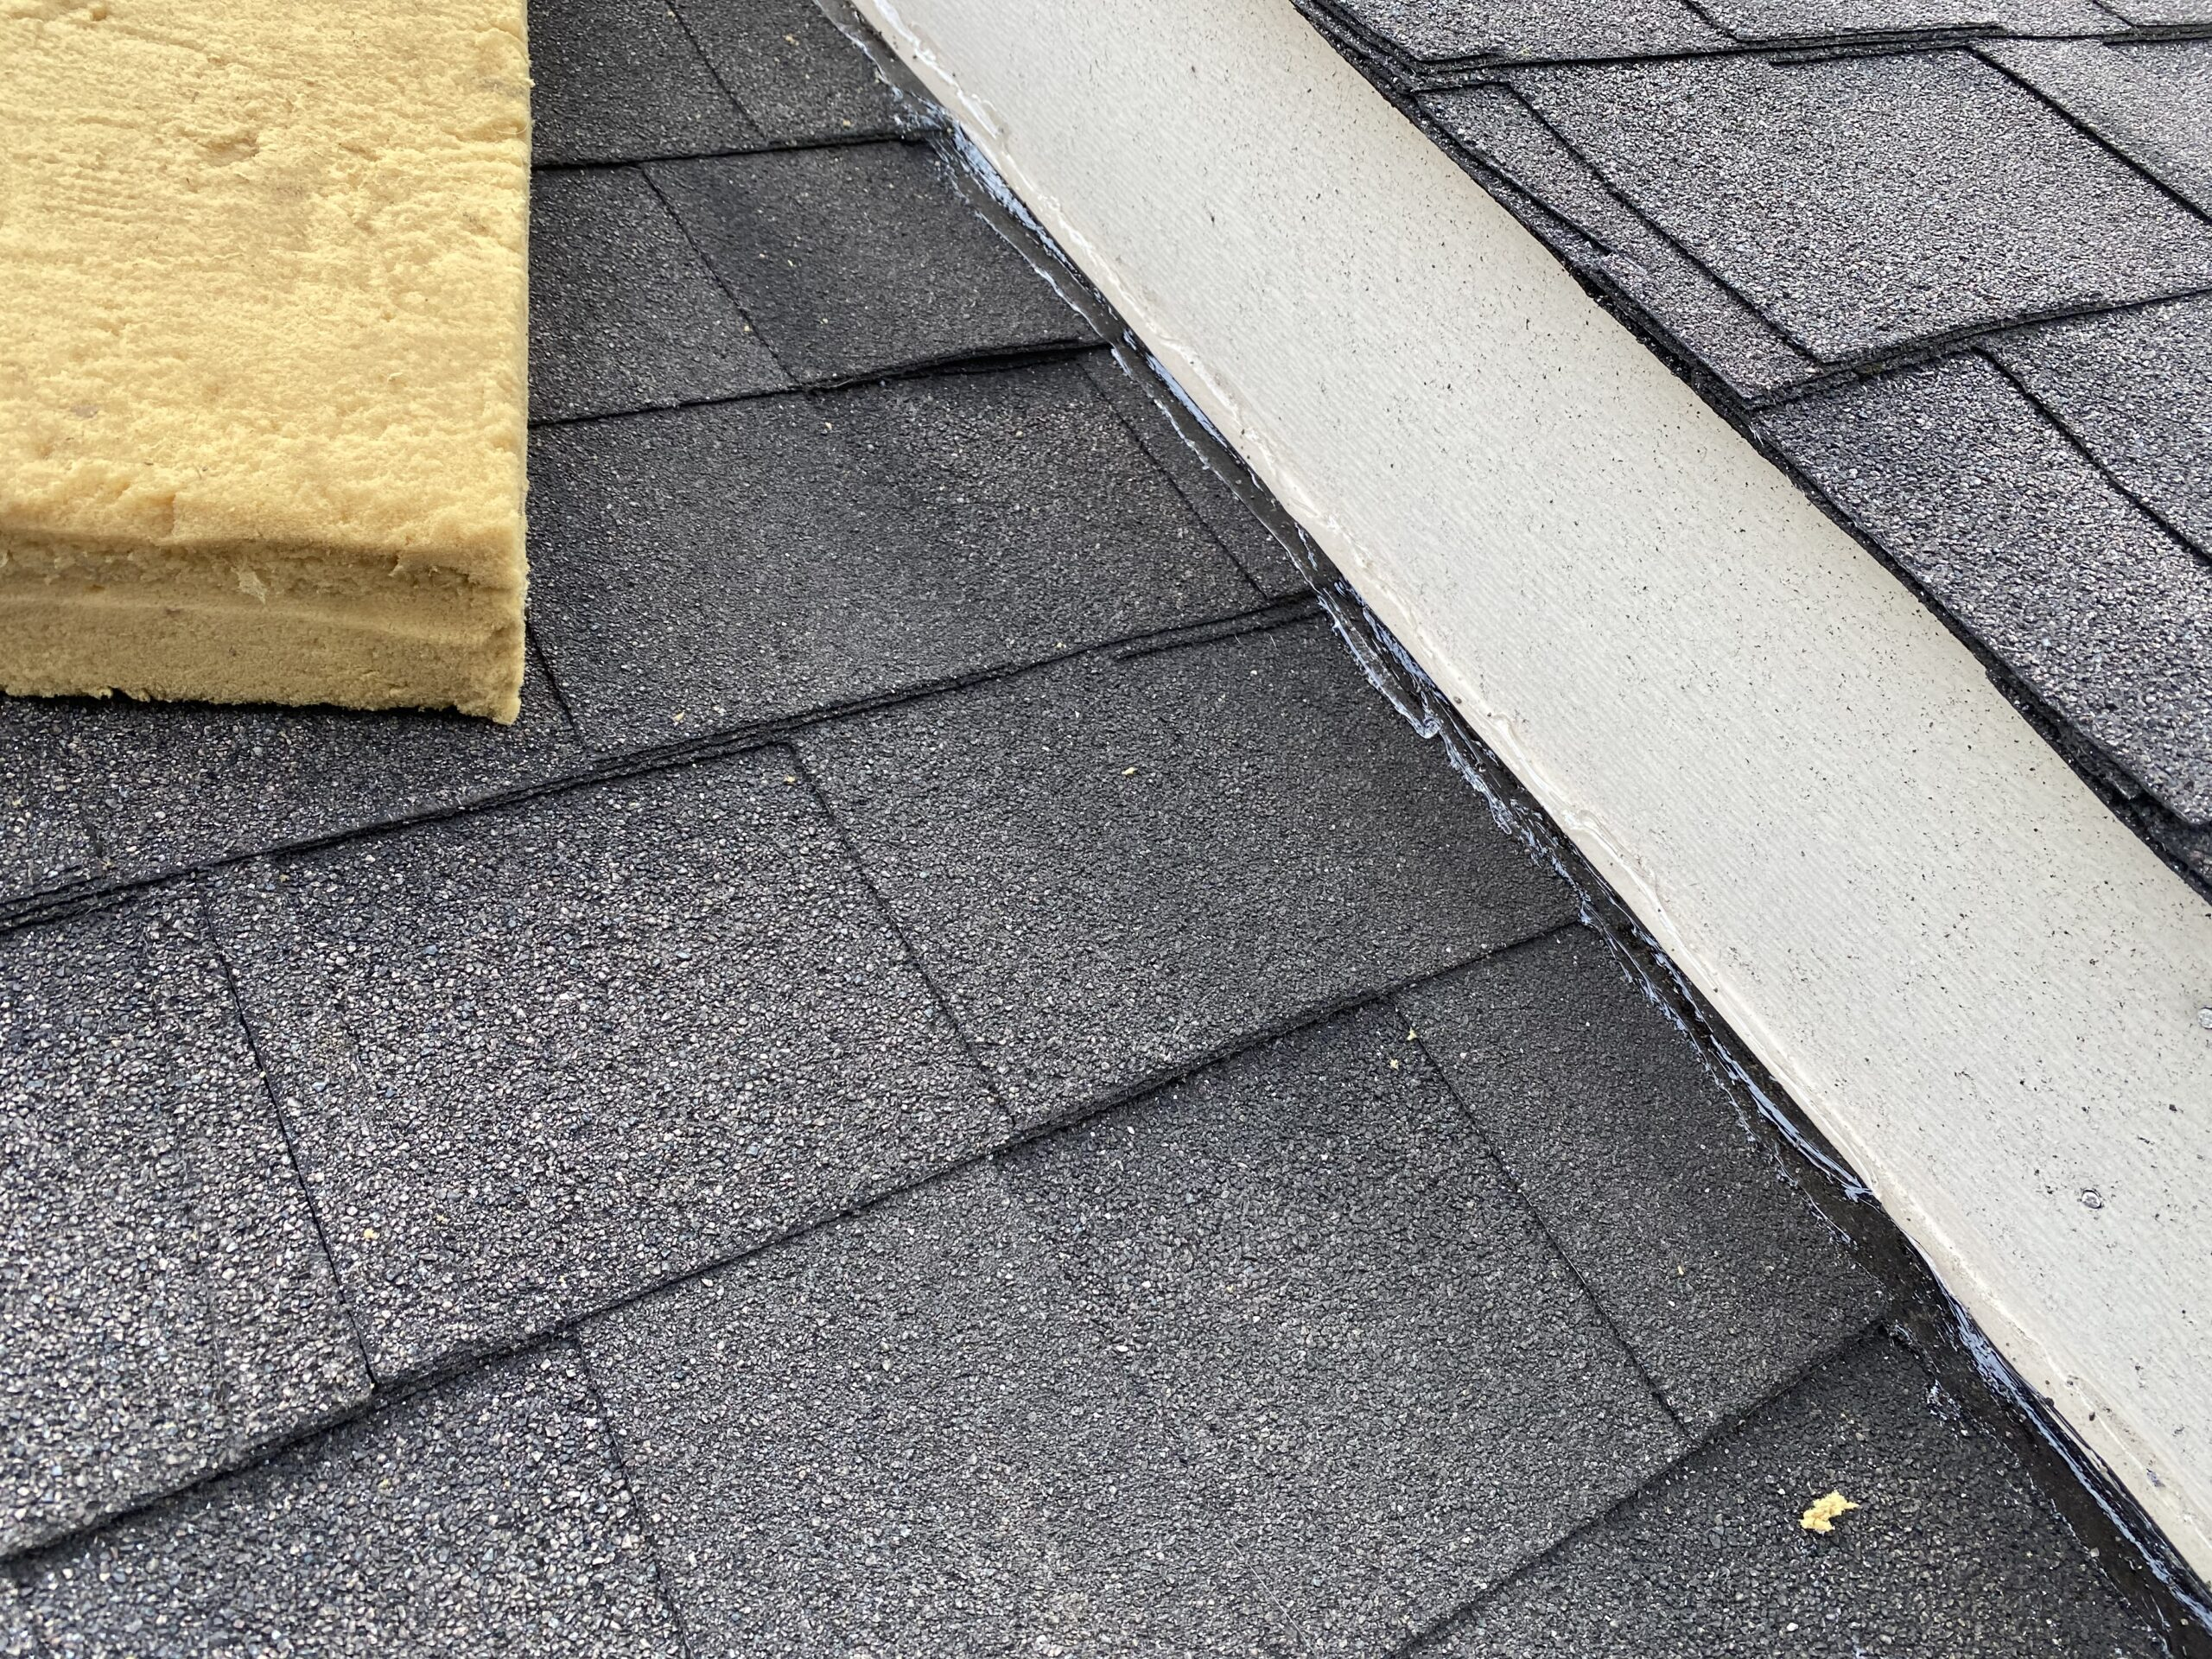 This is a picture of a roof line that was completely sealed with clear caulk